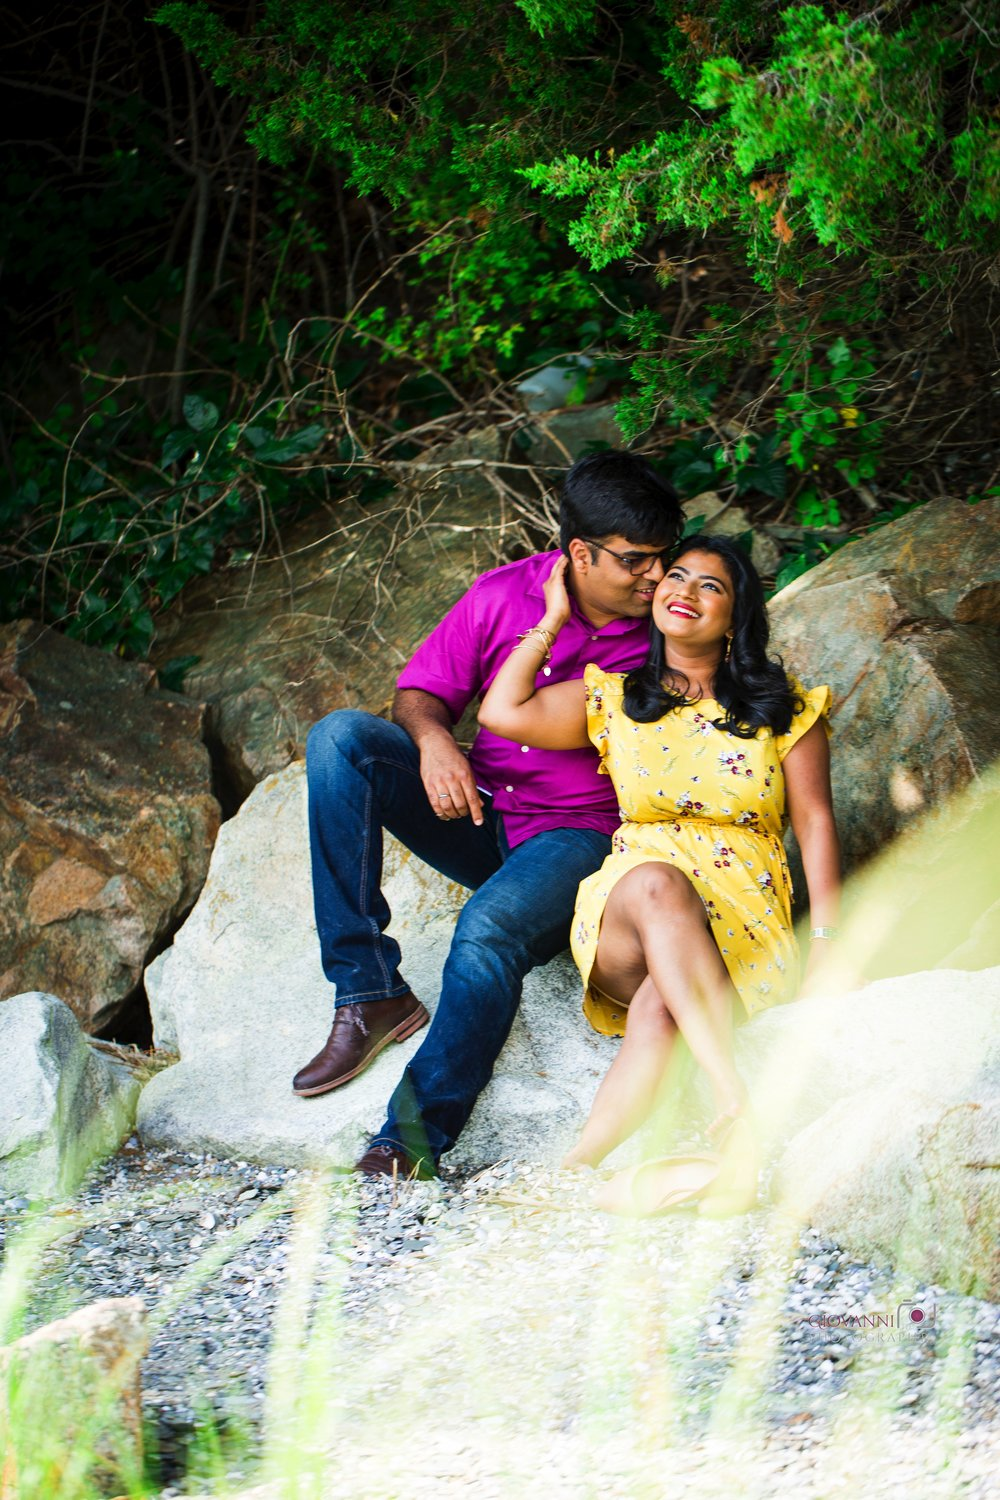 314A3789 Giovanni The Photographer Boston Engagement Session Webb Memorial State Park Shirin and Sammit WM100.jpg